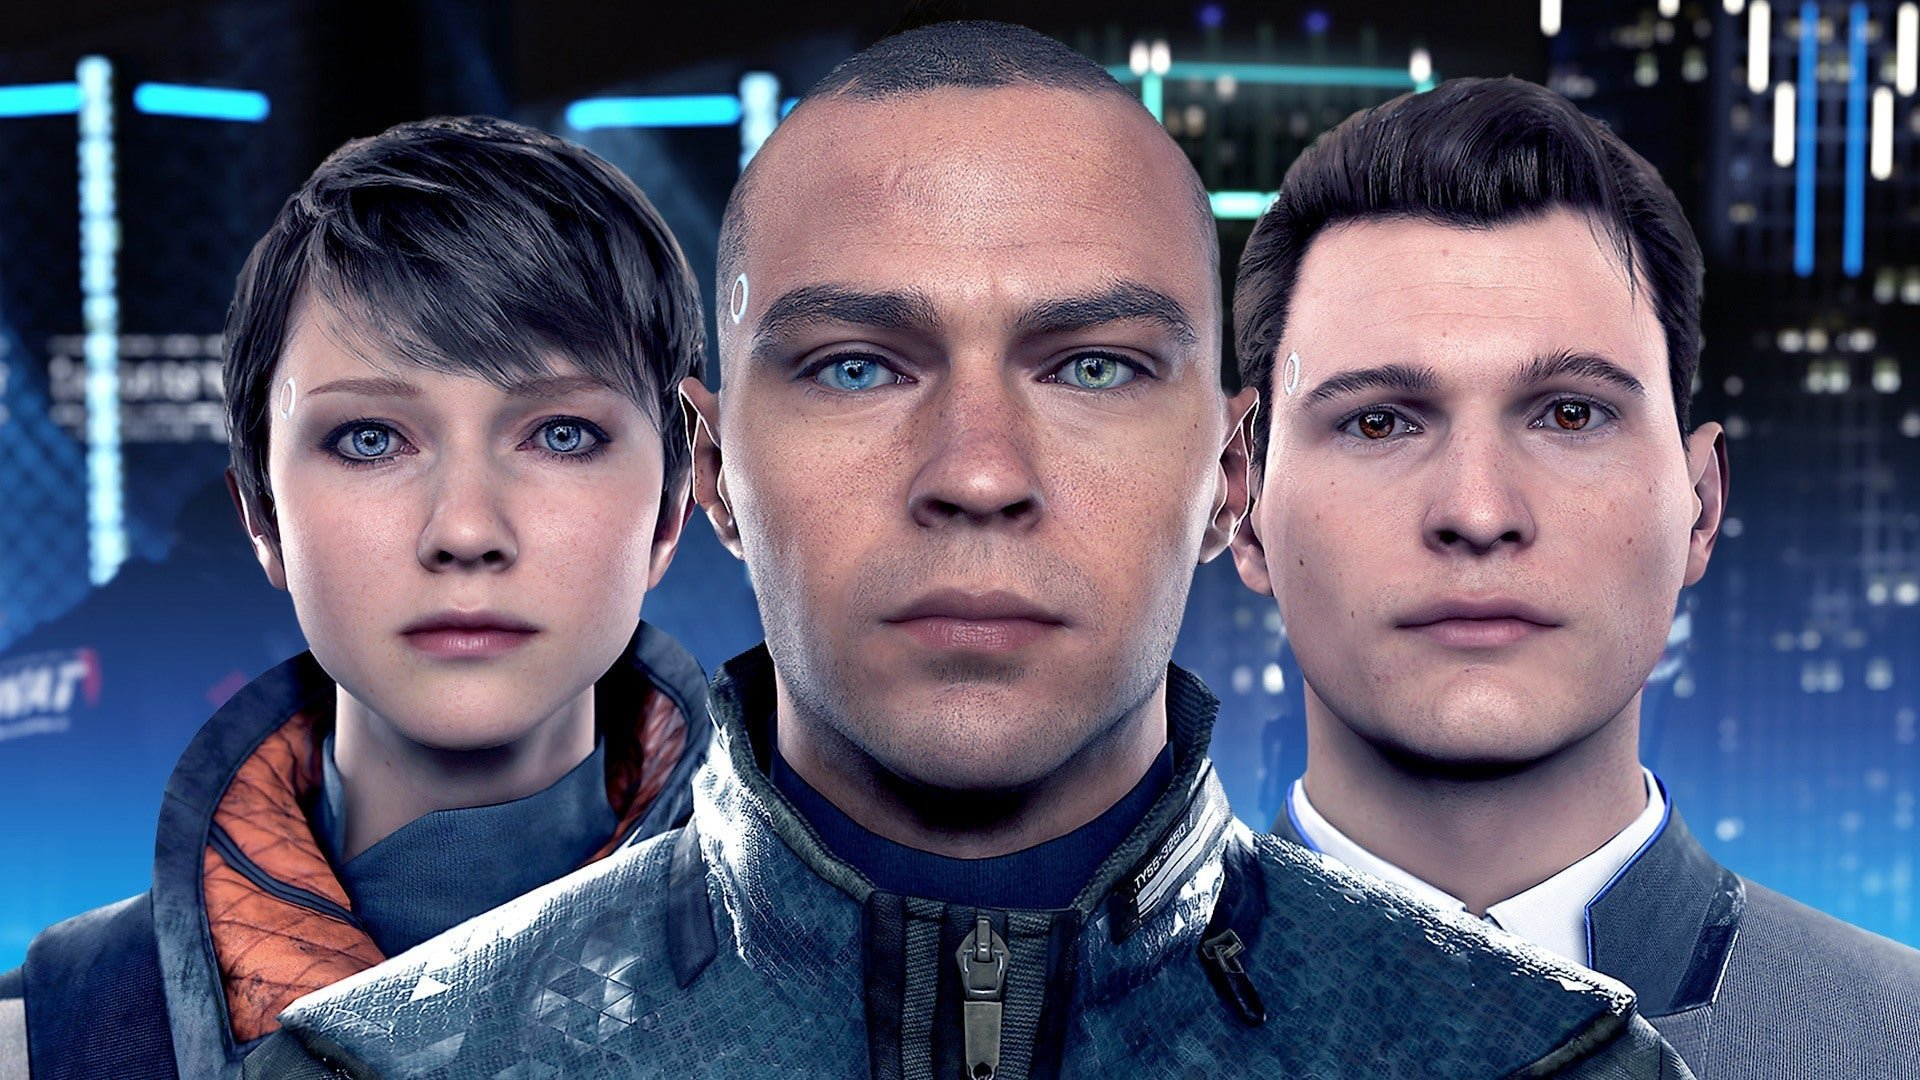 Detroit: Become Human Dev Quantic Dream Has 'a Lot of Surprises' Planned for 2020